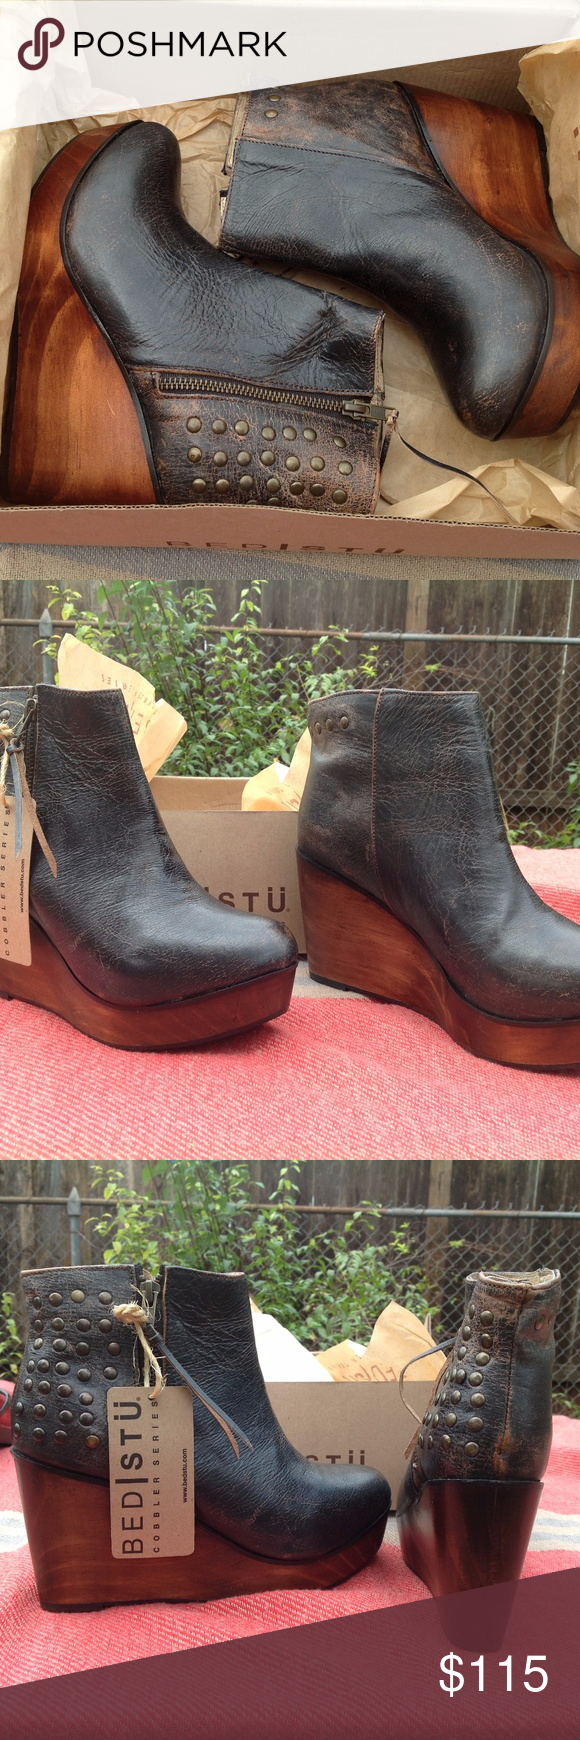 2c191e997cfe Bed Stu Ghent Black Lux Leather Platform Wedge Distress black lux leather  platform wedge ankle boot